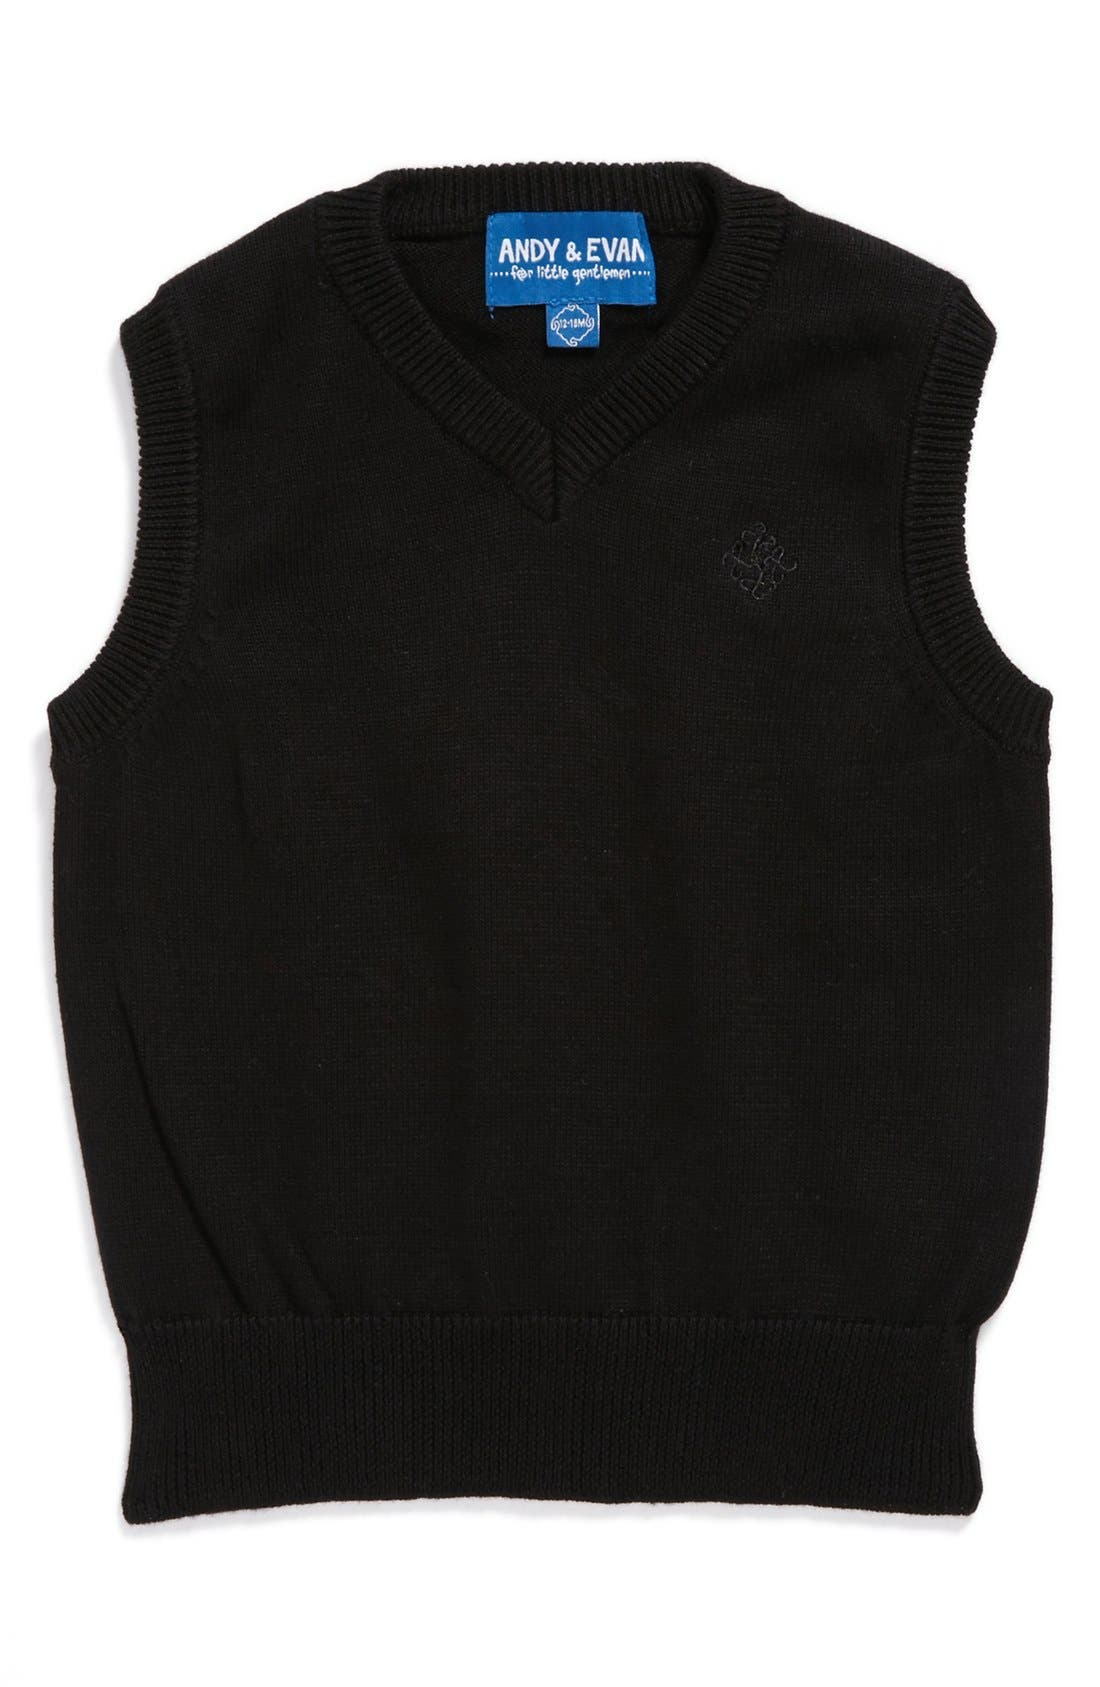 Main Image - Andy & Evan for little gentlemen Sweater Vest (Toddler Boys)